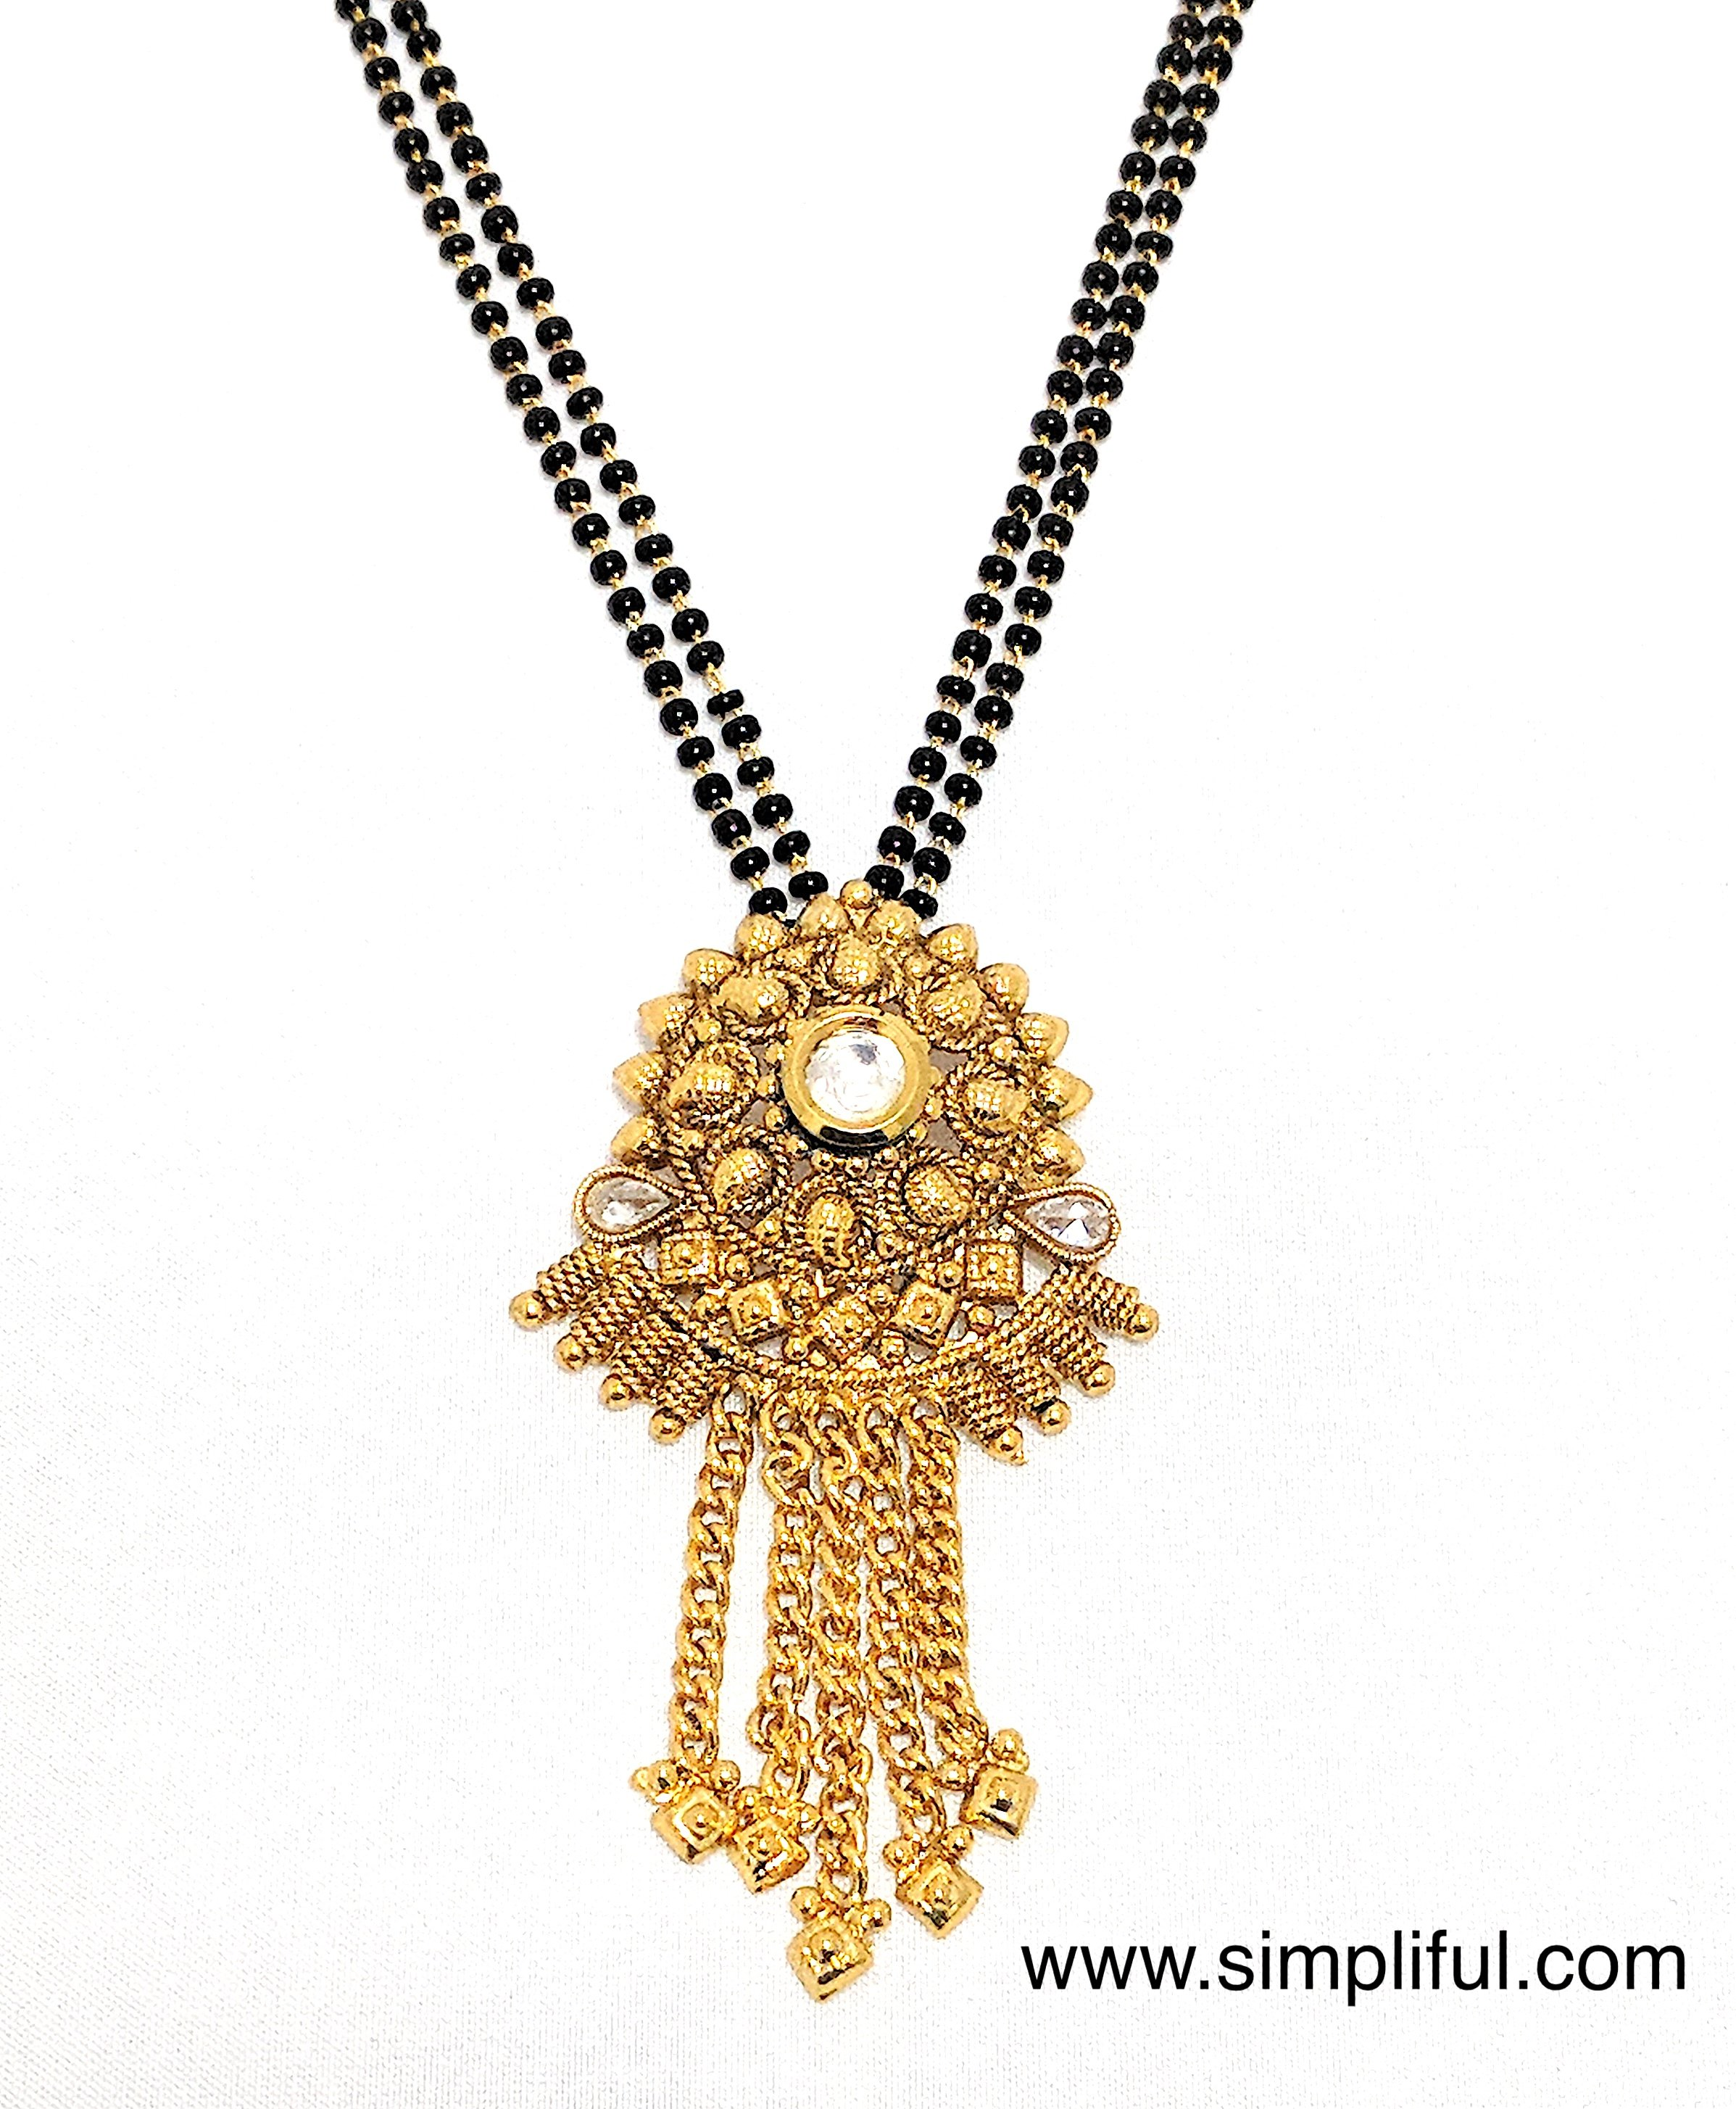 Antique gold pendant mangalsutra double chain